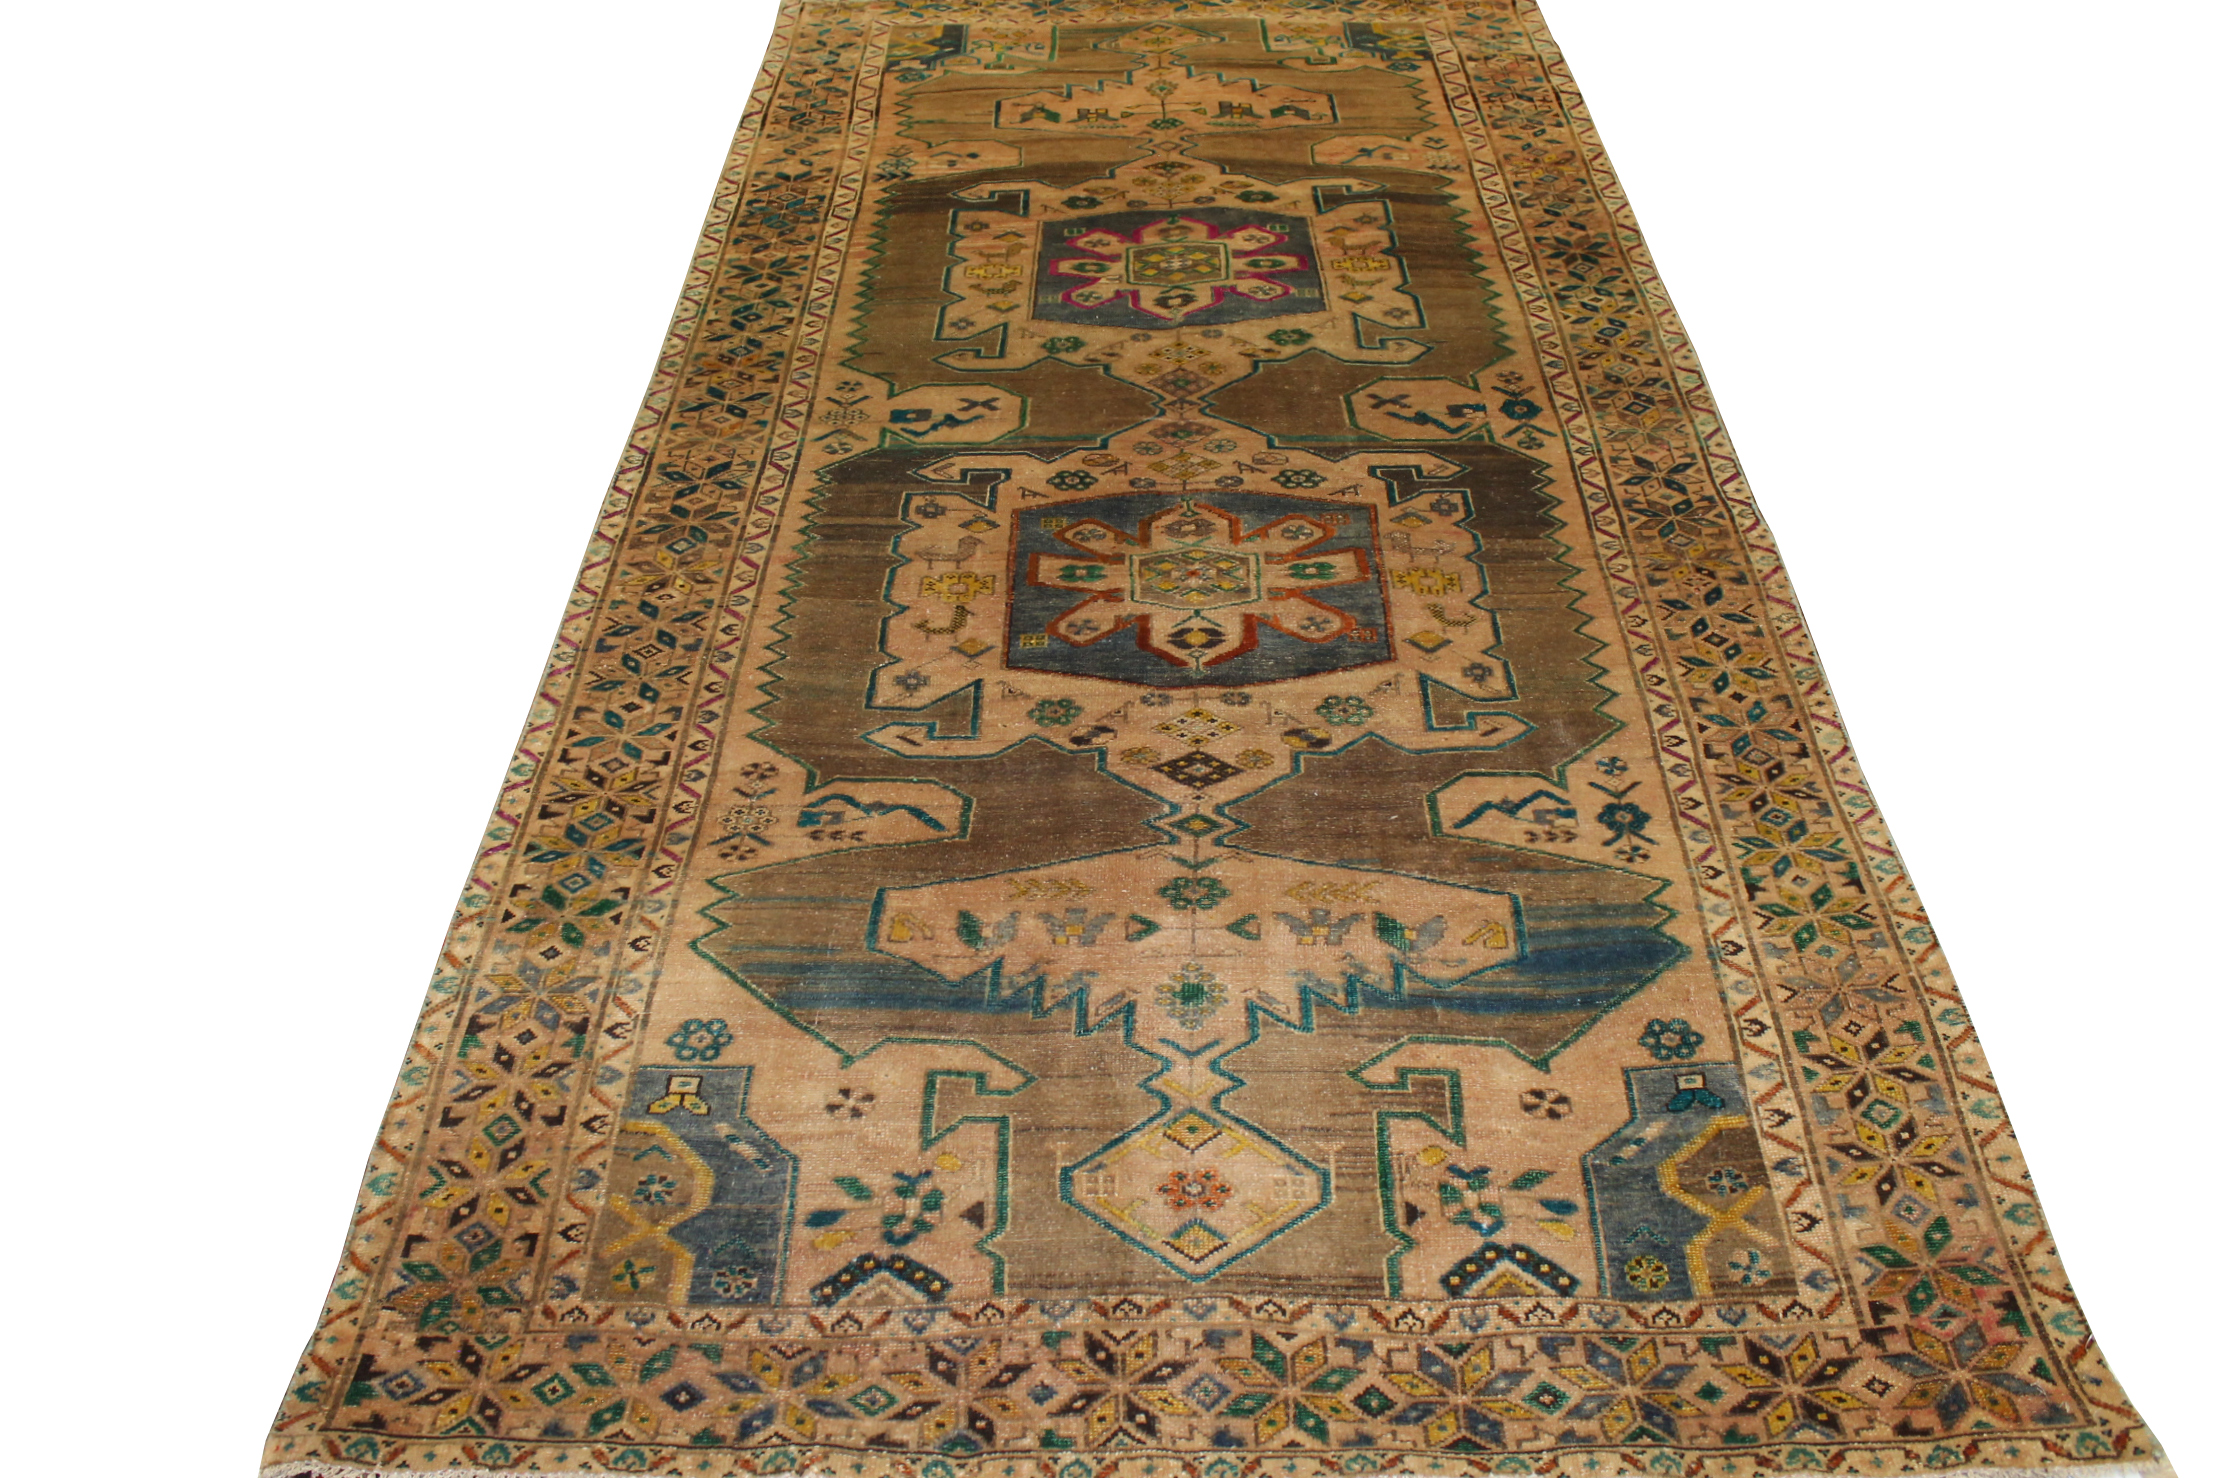 6x9 Vintage Hand Knotted Wool Area Rug - MR023646